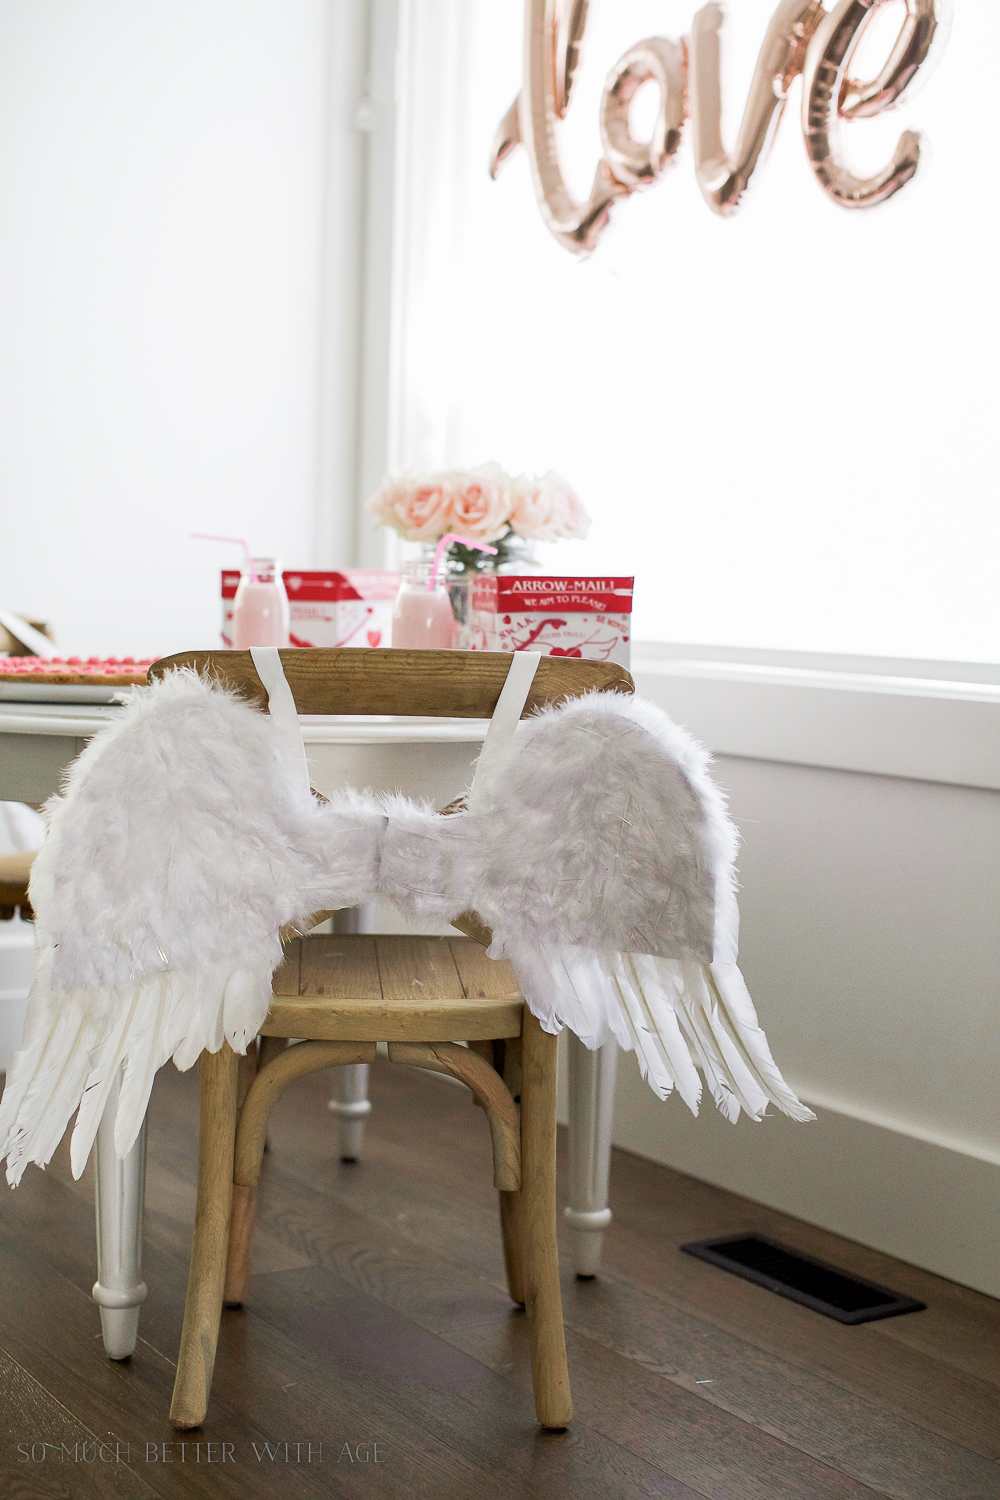 Valentine's Day Kids' Table / wooden chair with angel wings - So Much Better With Age